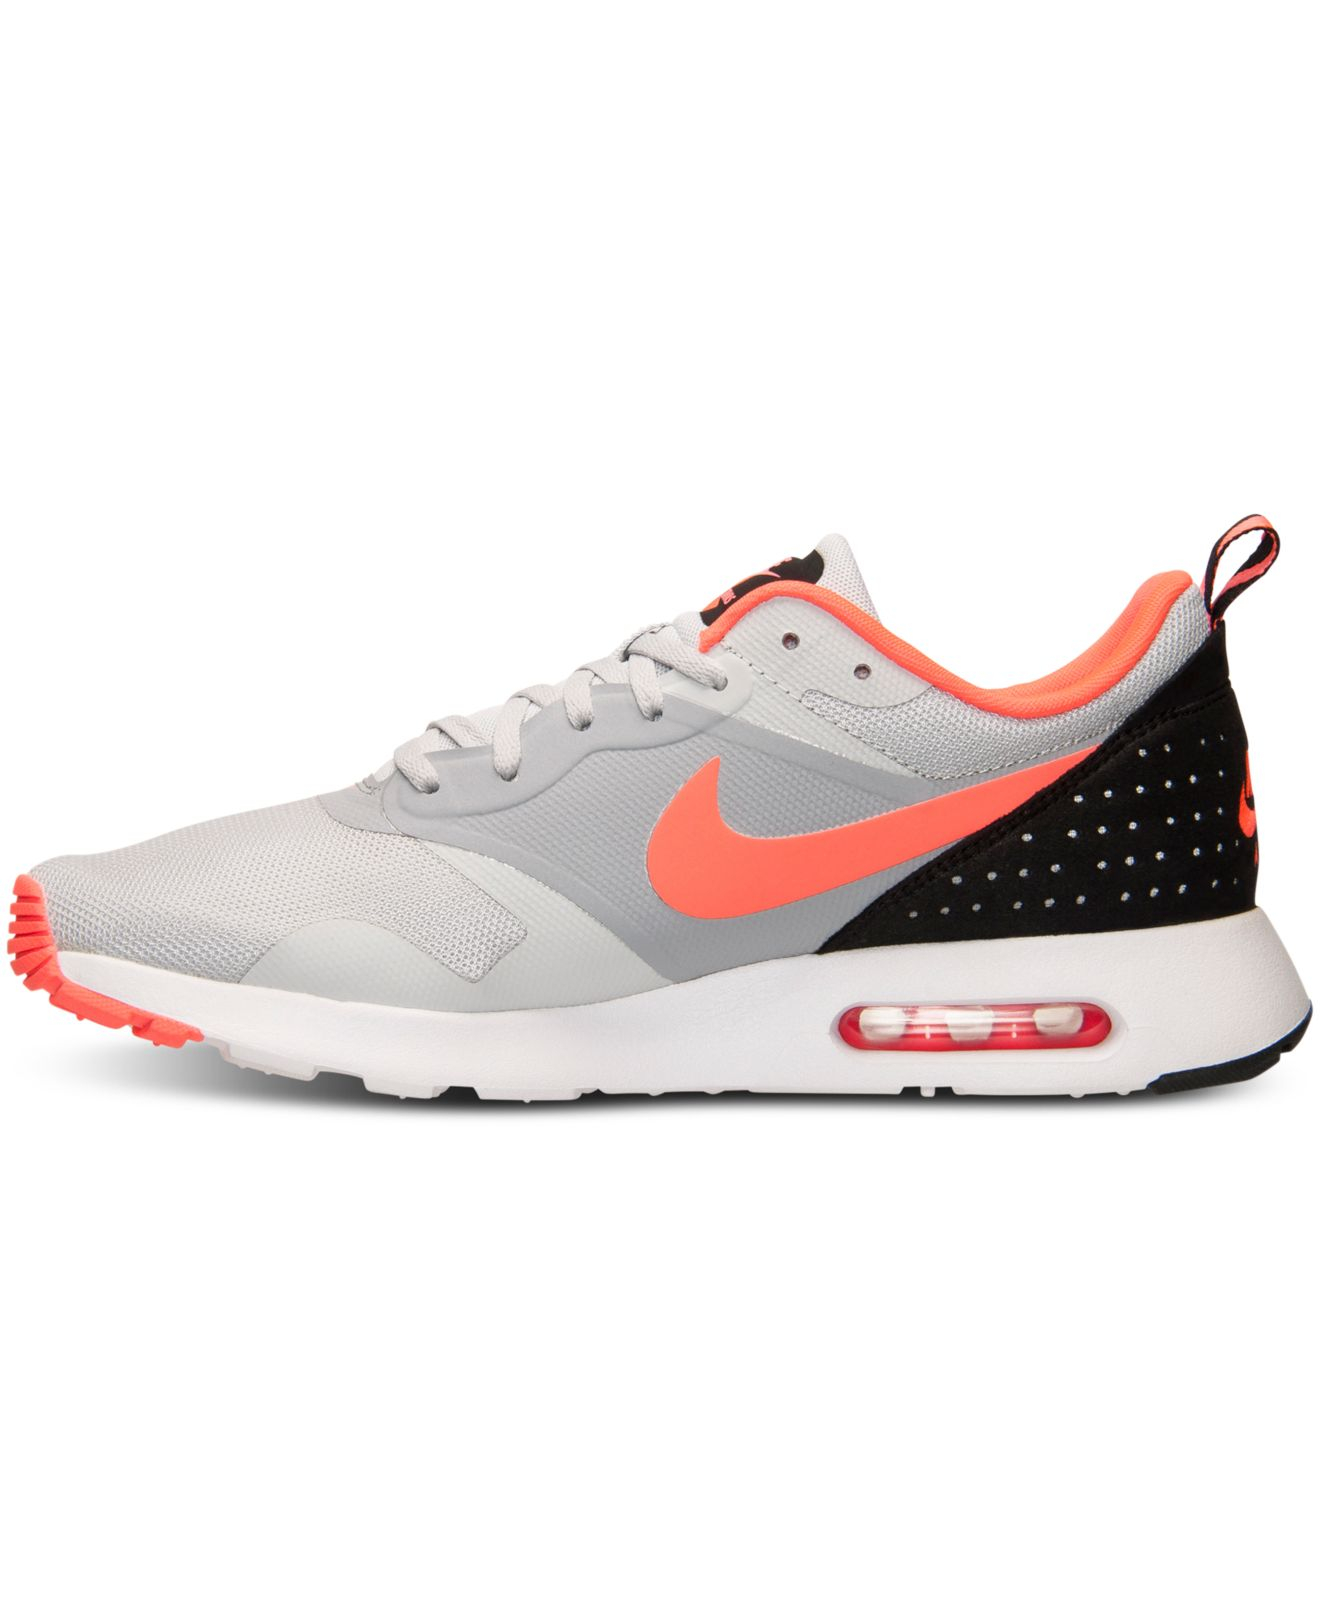 separation shoes c3855 dc29d Nike Men s Air Max Tavas Running Sneakers From Finish Line in Orange ...